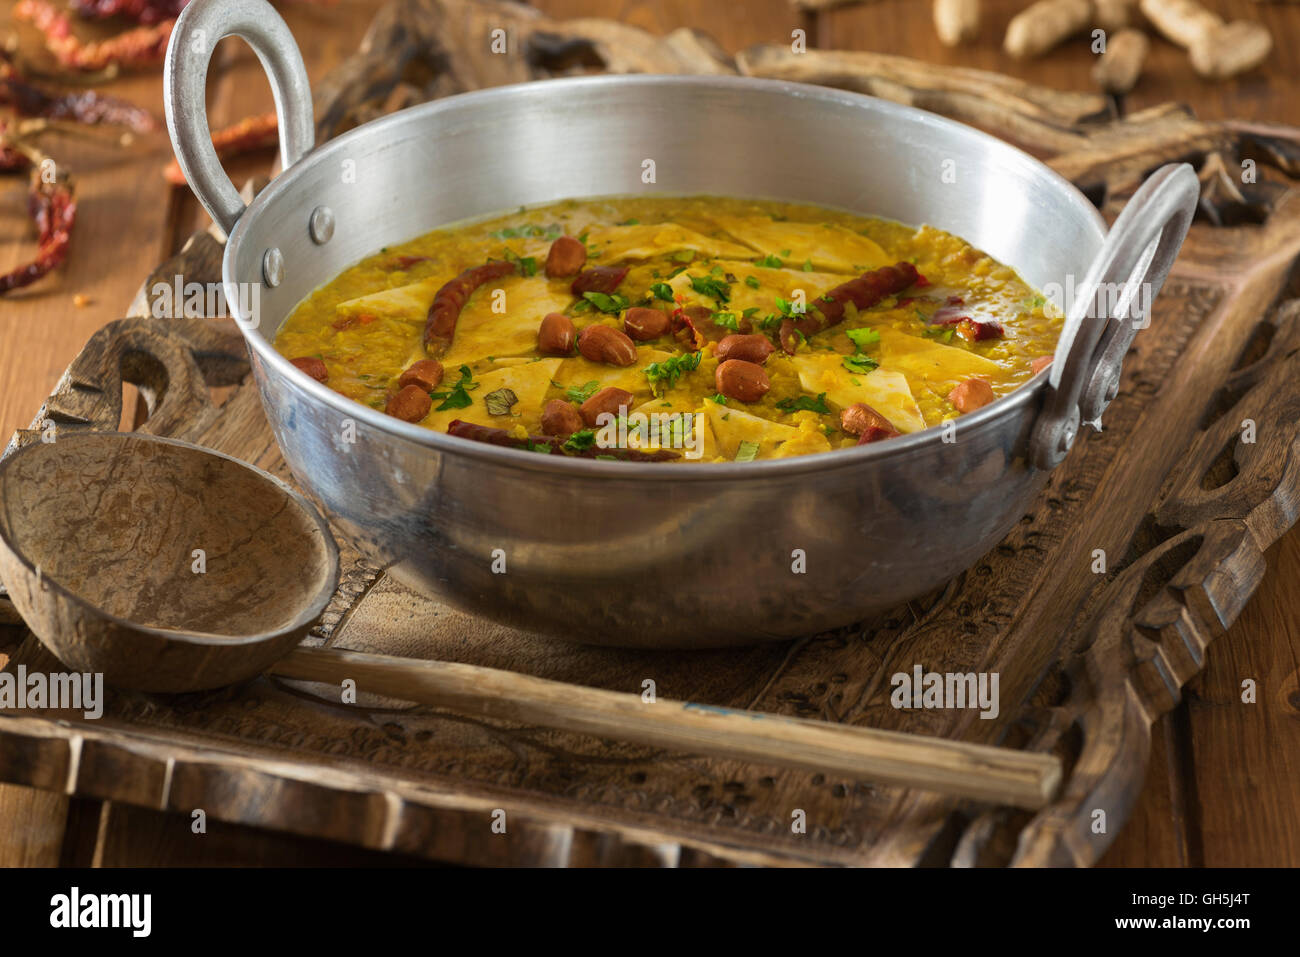 Dal Dhokli. Gujarati lentil stew. India Food Stock Photo